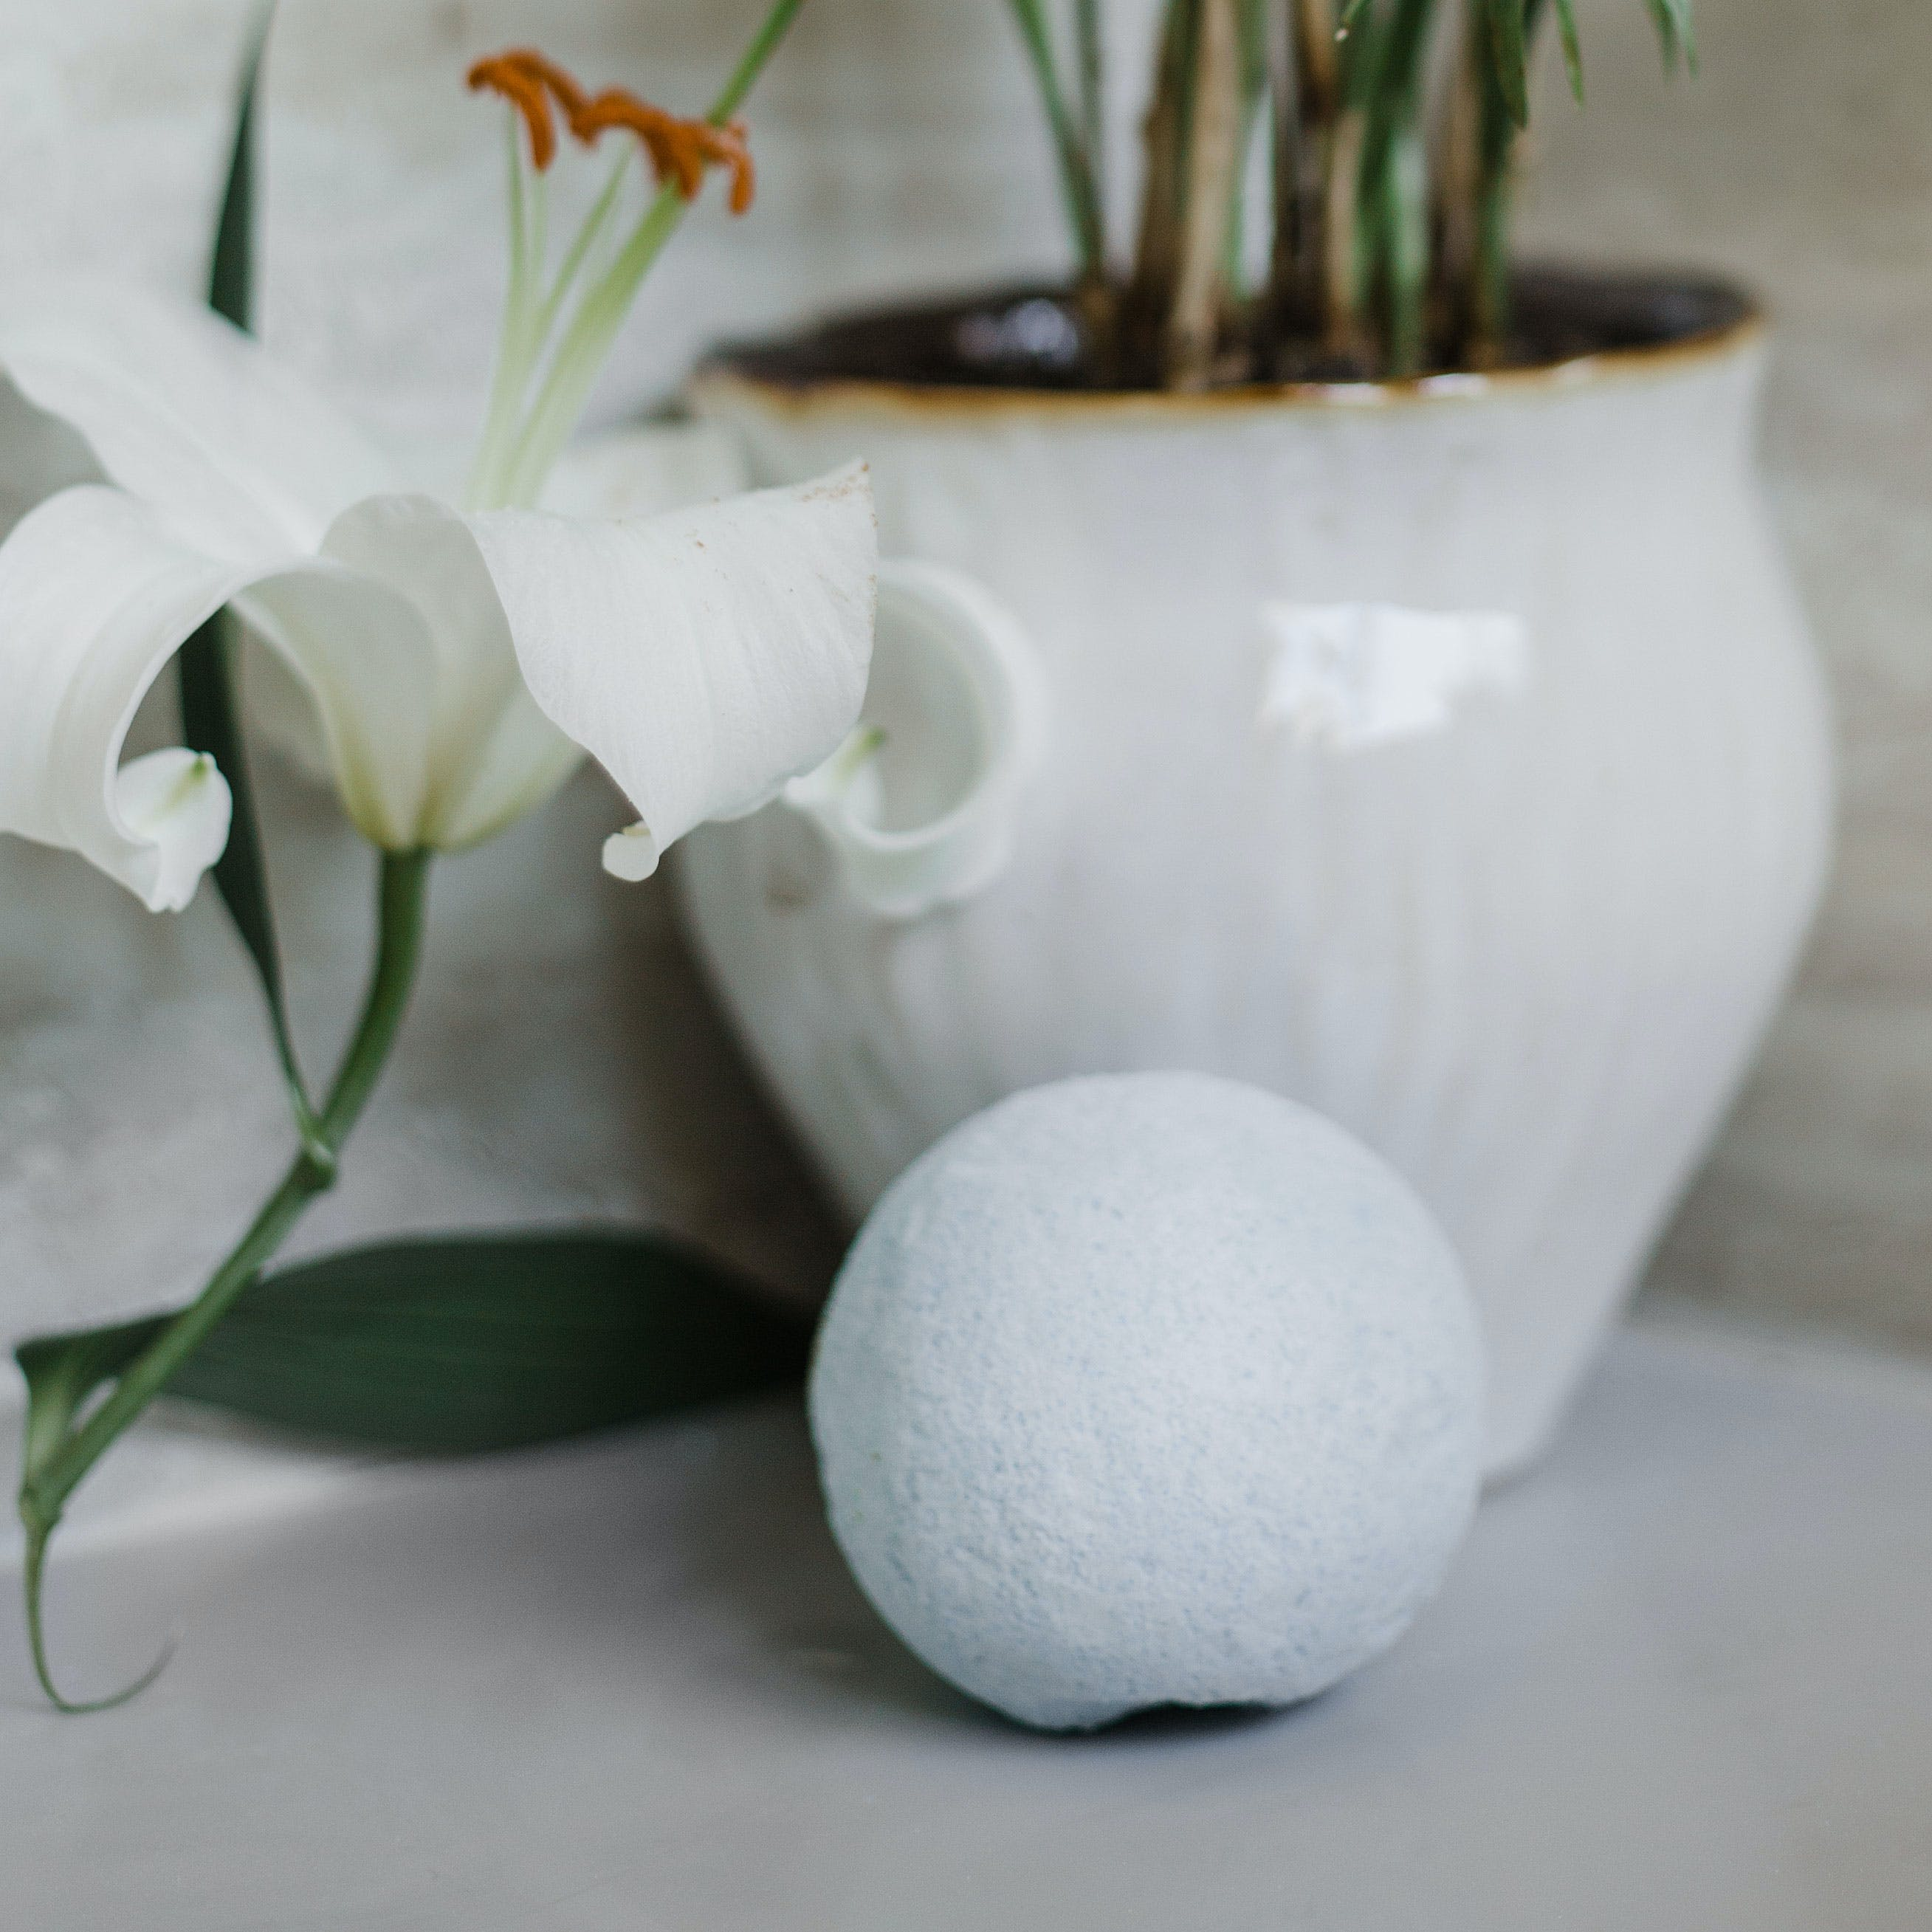 1Add More Than Just Bubbles To The Tub With The Best CBD Bath Bombs1 How to Get the Most Out Of Your Stash with the Best Weed Grinders